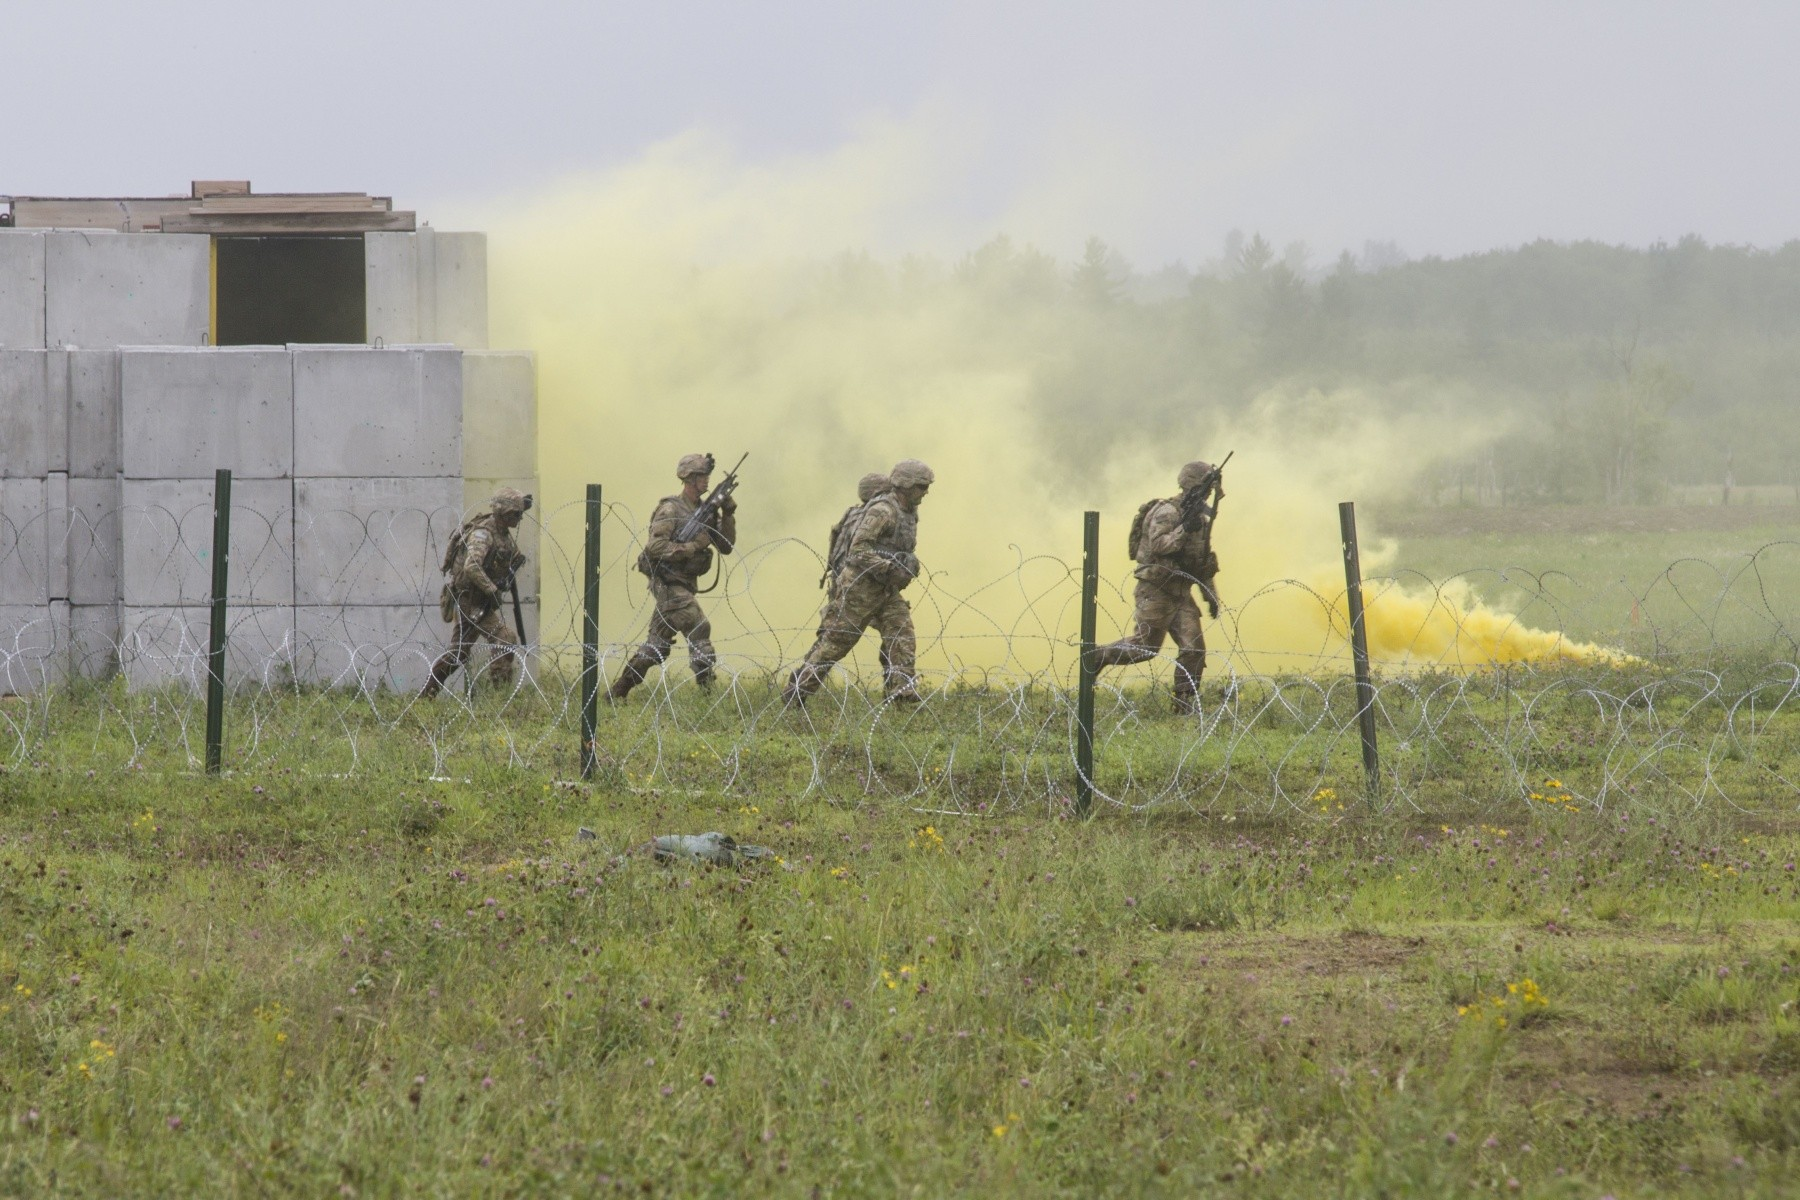 1-32 IN Conducts Live-Fire Exercise | Article | The United